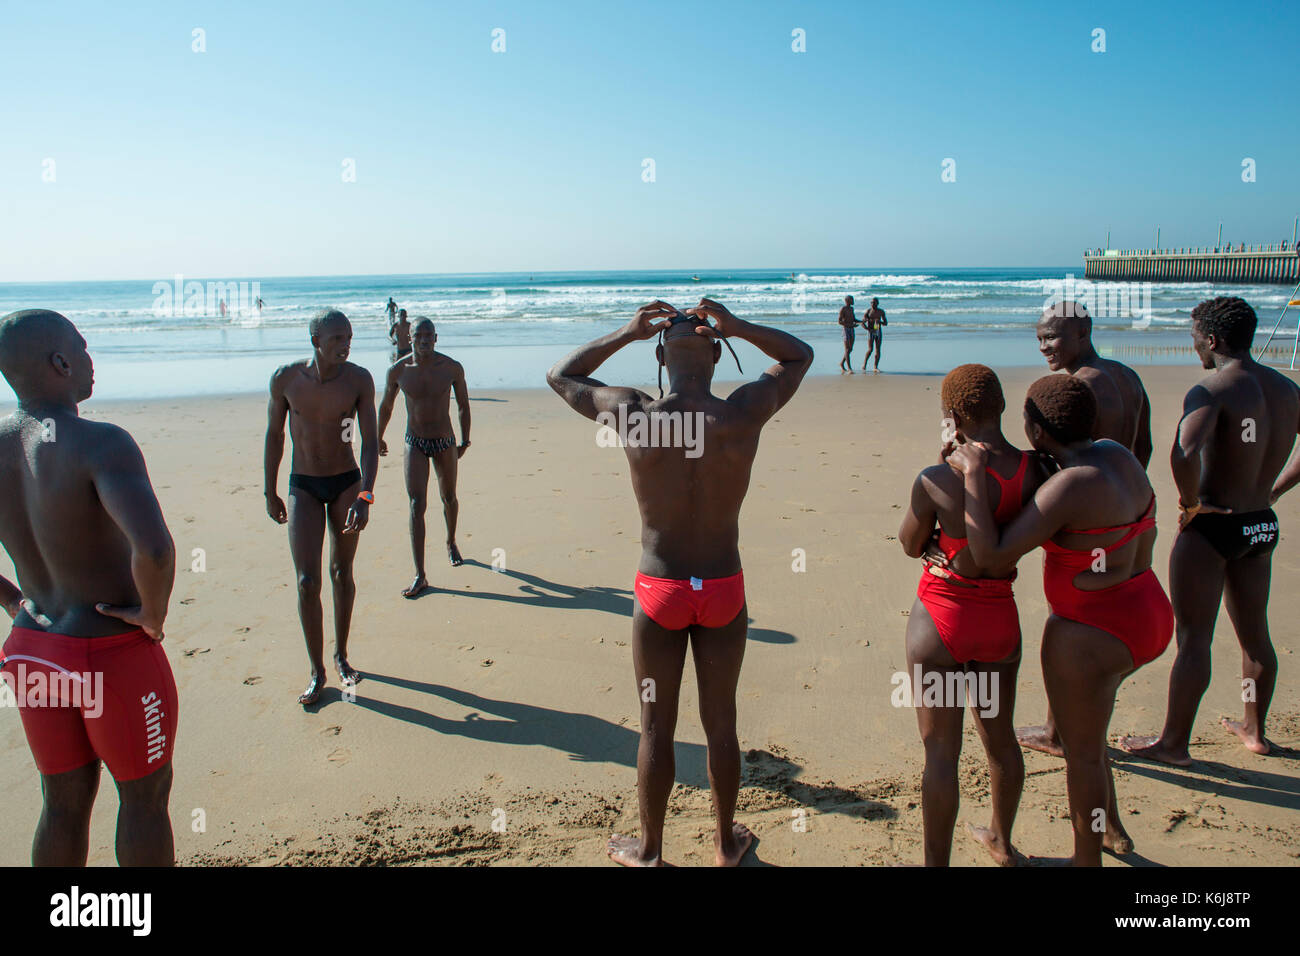 Lifeguards resting while performing training drills near promenade on Golden Mile, Durban, South Africa - Stock Image